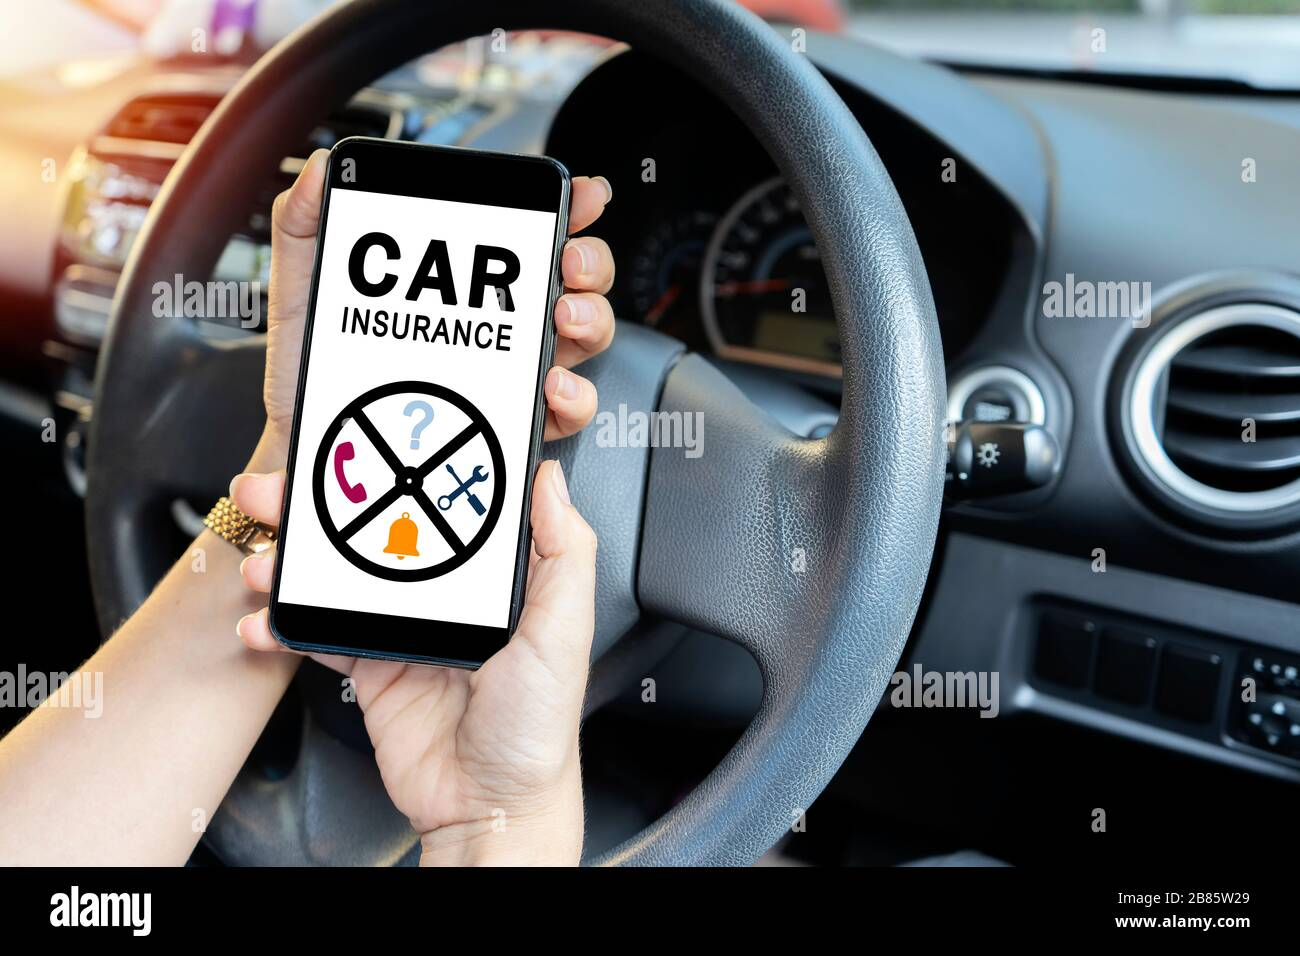 Car Insurance Concept Driver Reading Website On Smartphone Women Who Need Help From Insurance Companies When Having An Accident Stock Photo Alamy